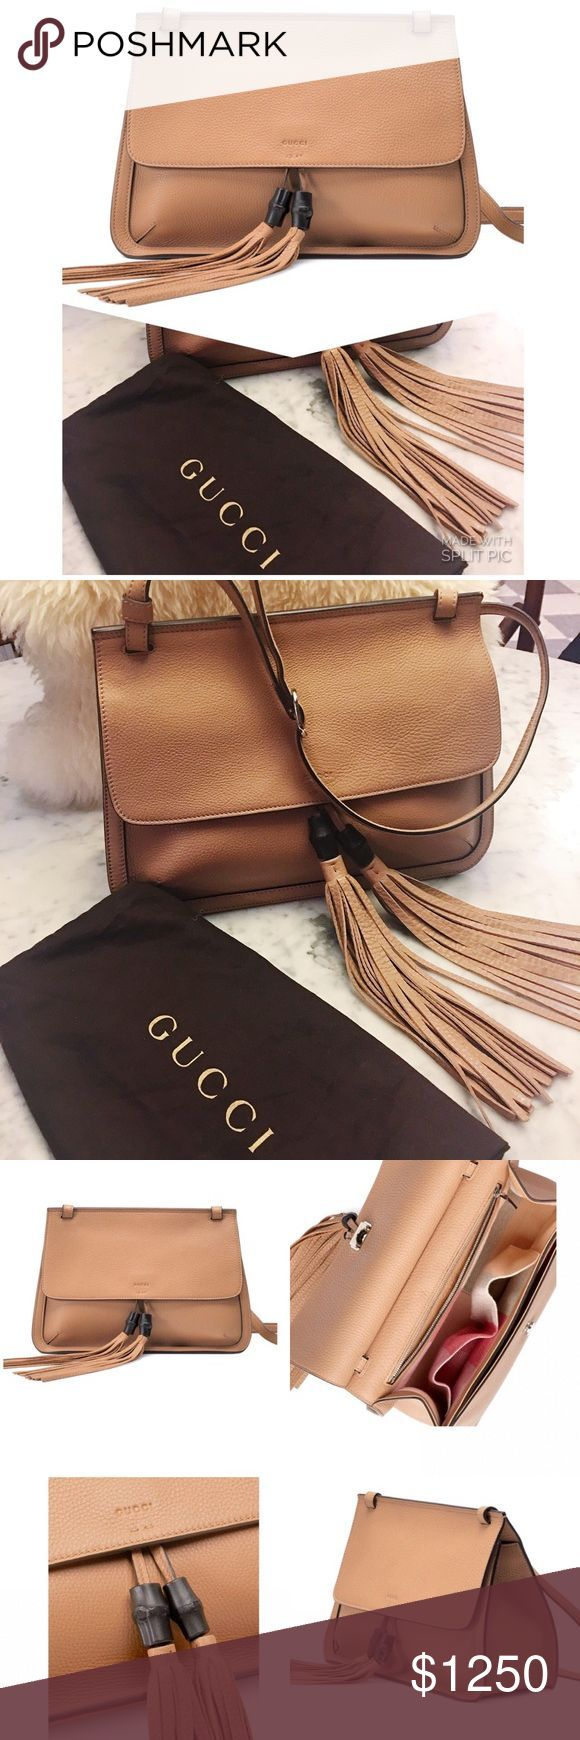 NWT Gucci Bamboo Daily Leather Flap Shoulder Bag Genuine Gucci new with tags and NWT Gucci Bamboo Daily Leather Flap Shoulder Bag Genuine Gucci new with tags and